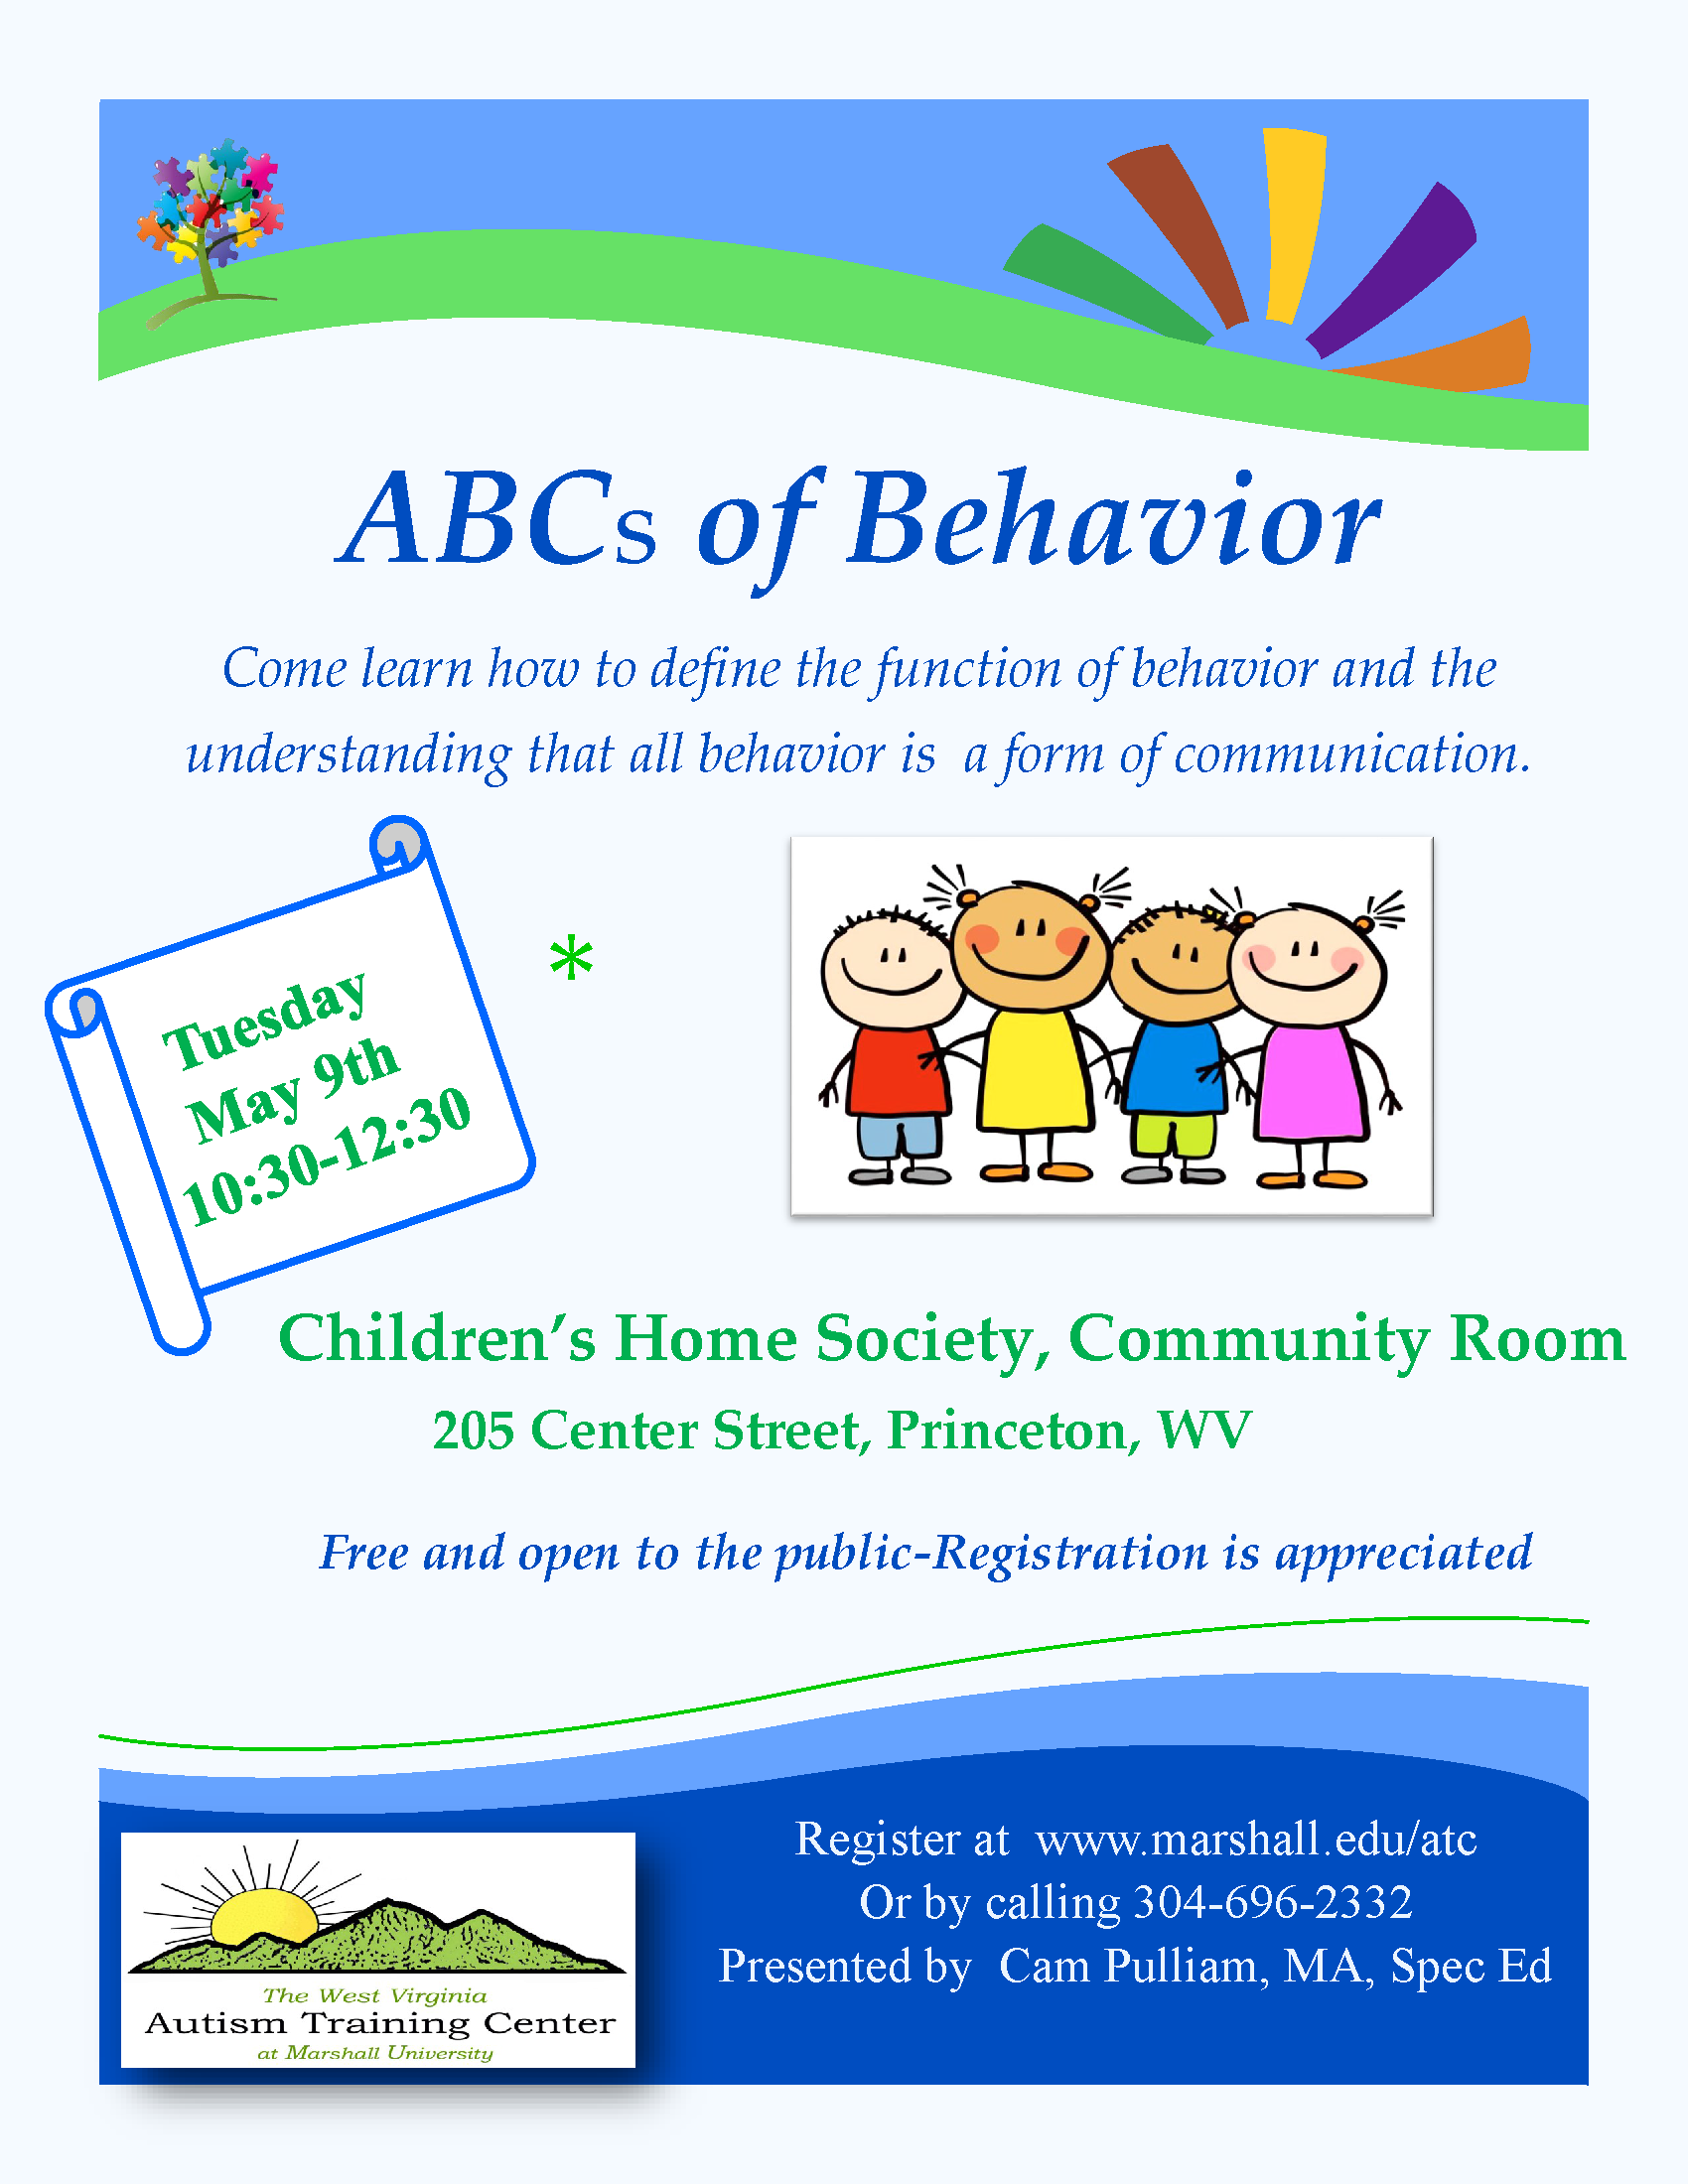 Wv colored childrens home - Register Below